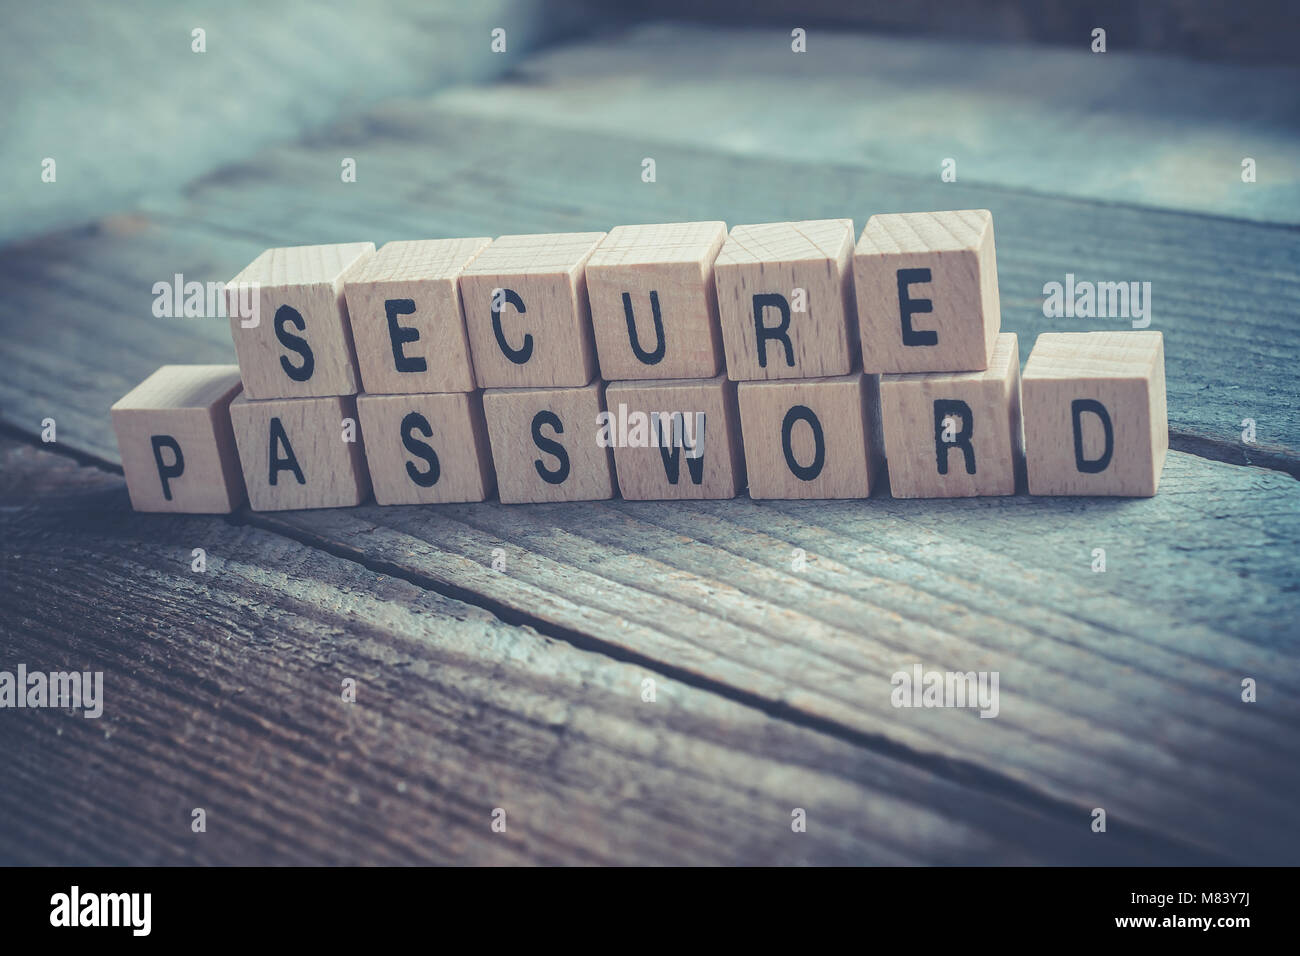 Macro Of The Words Secure Password Formed By Wooden Blocks On A Wooden Floor - Stock Image